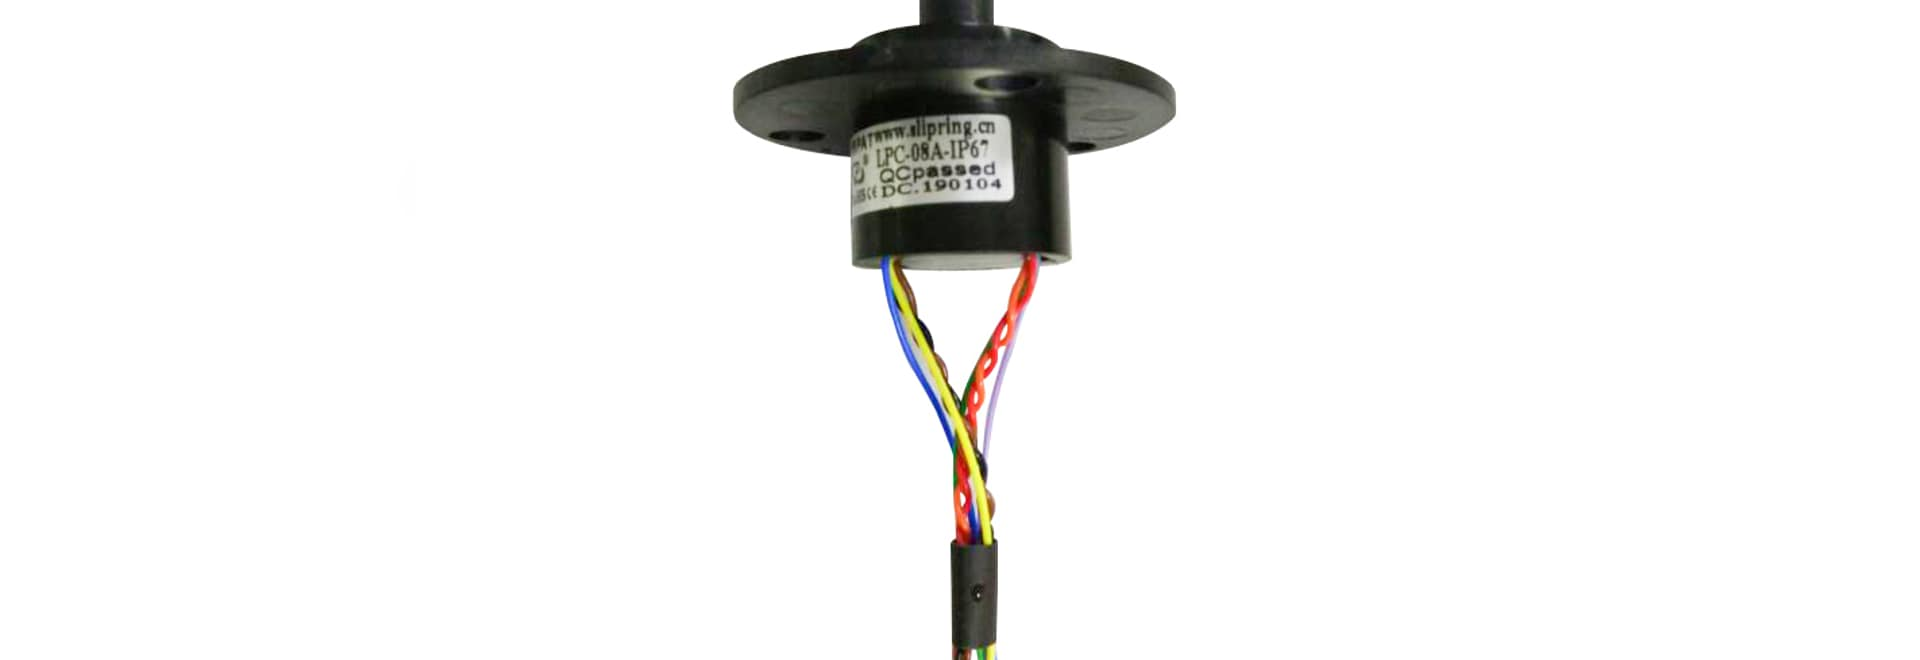 Small Capsule Slip Ring with High Working Speed